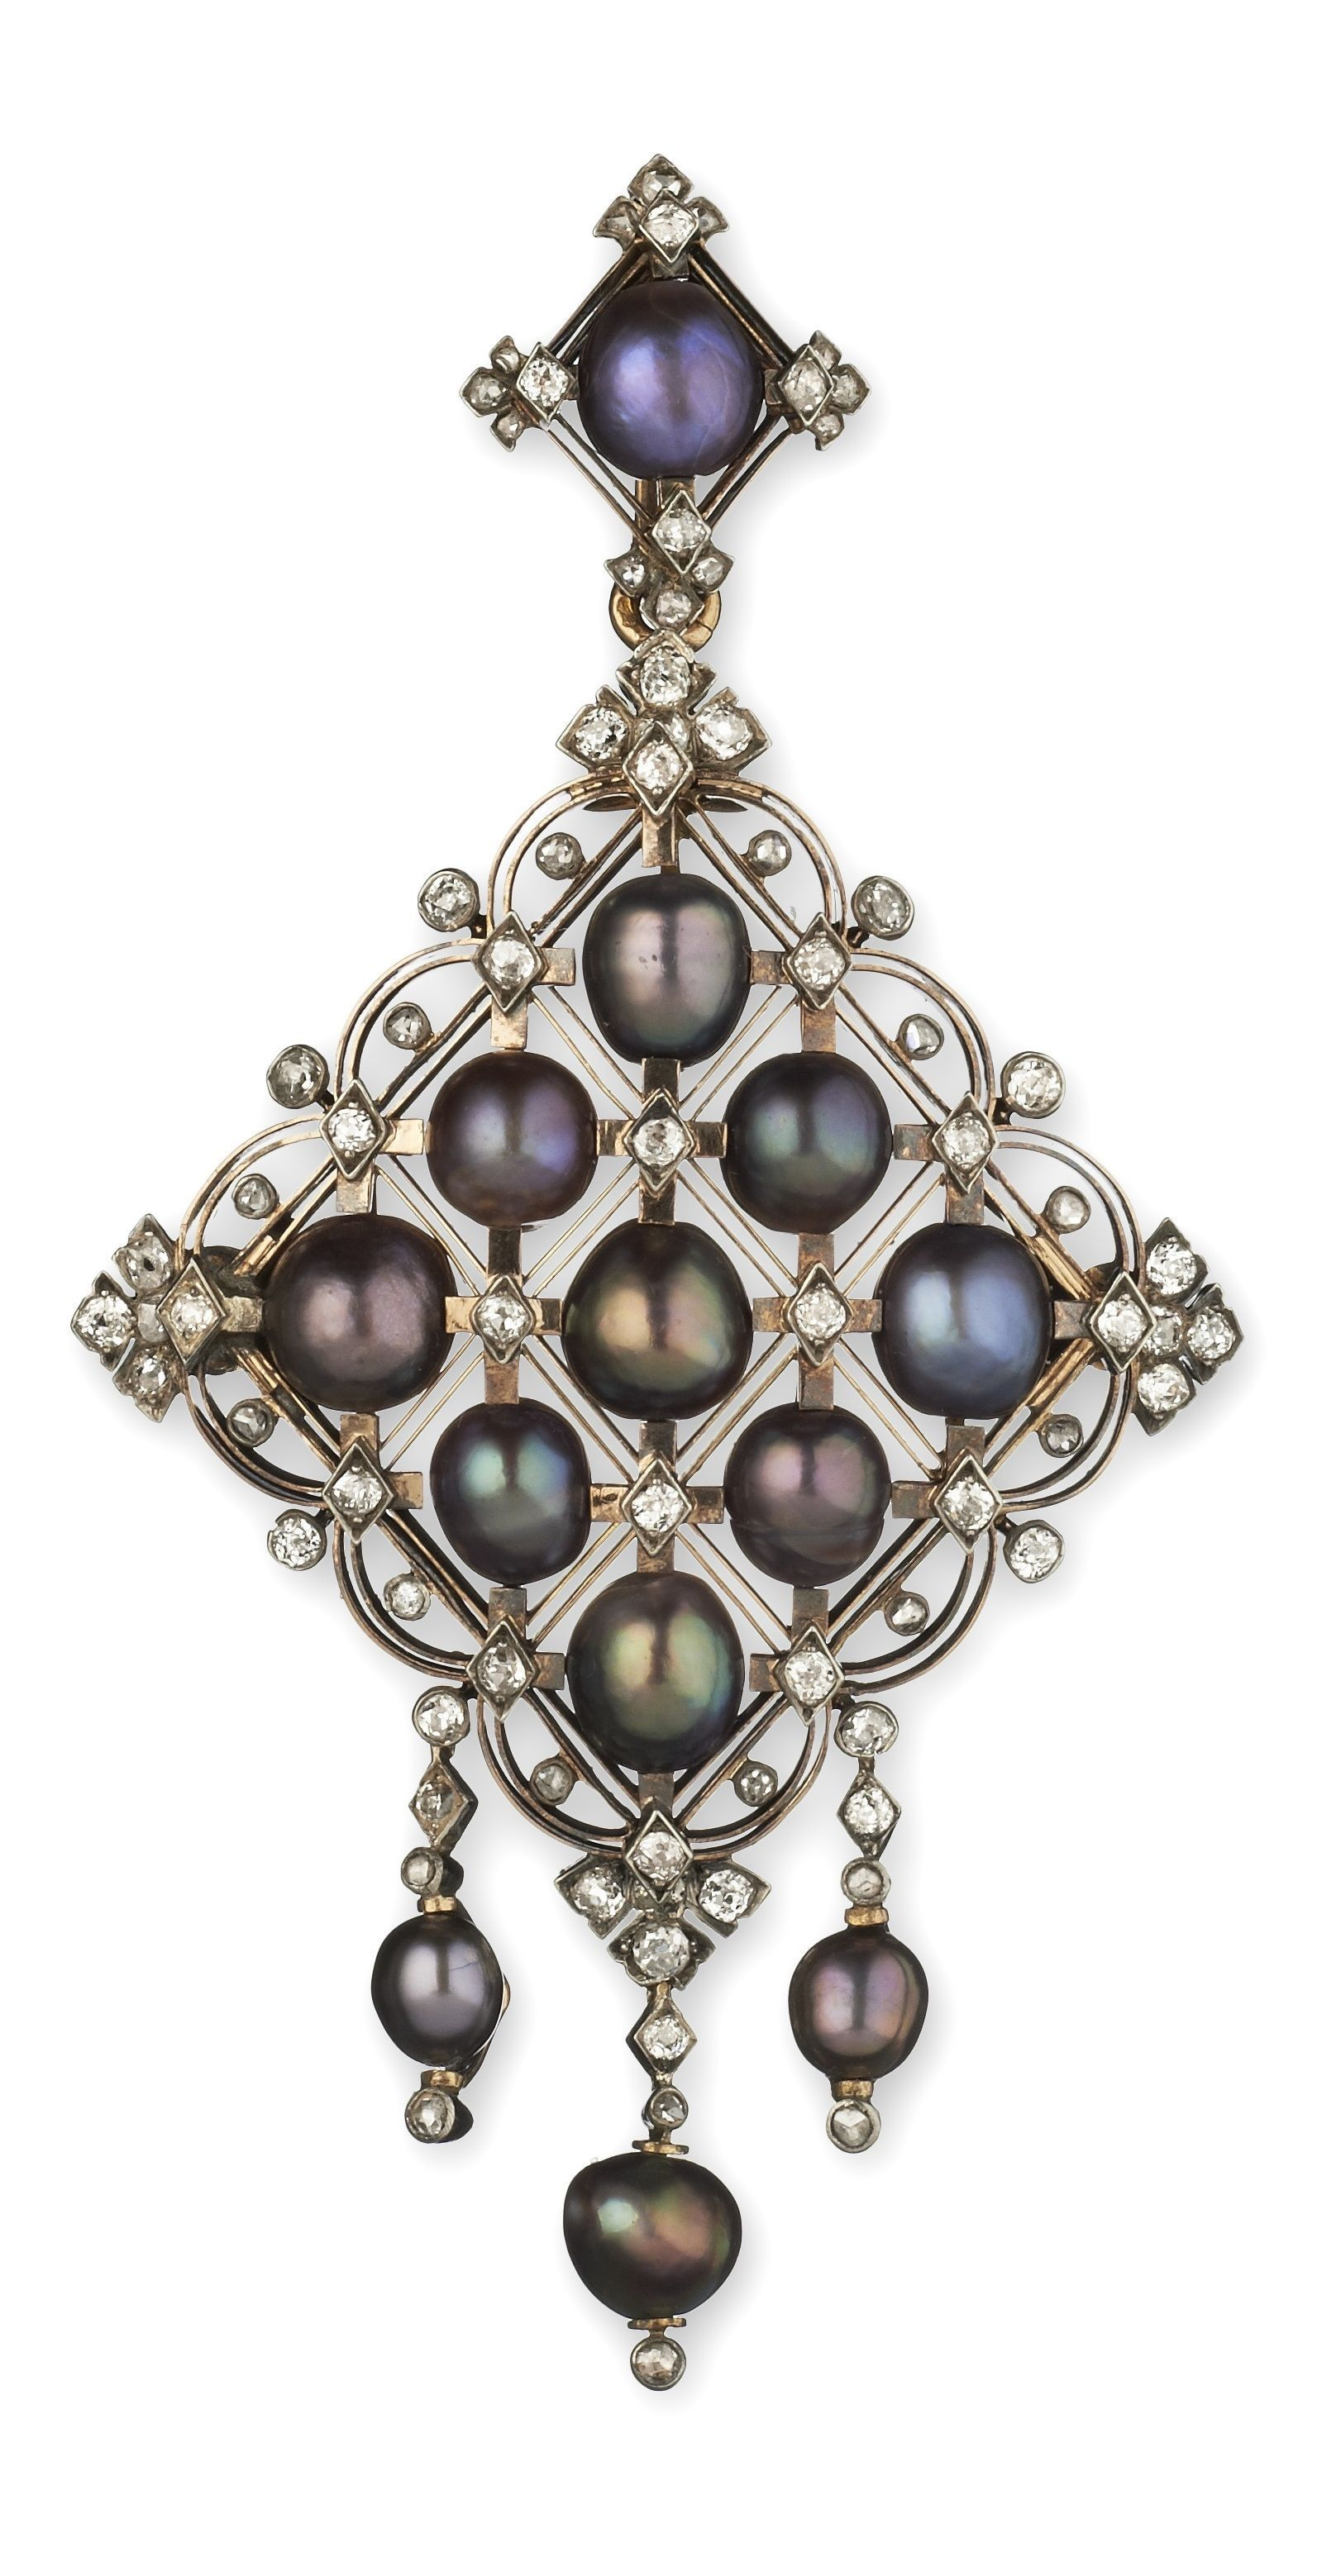 Bapst et falize an antique gold enamel pearl and diamond pendant